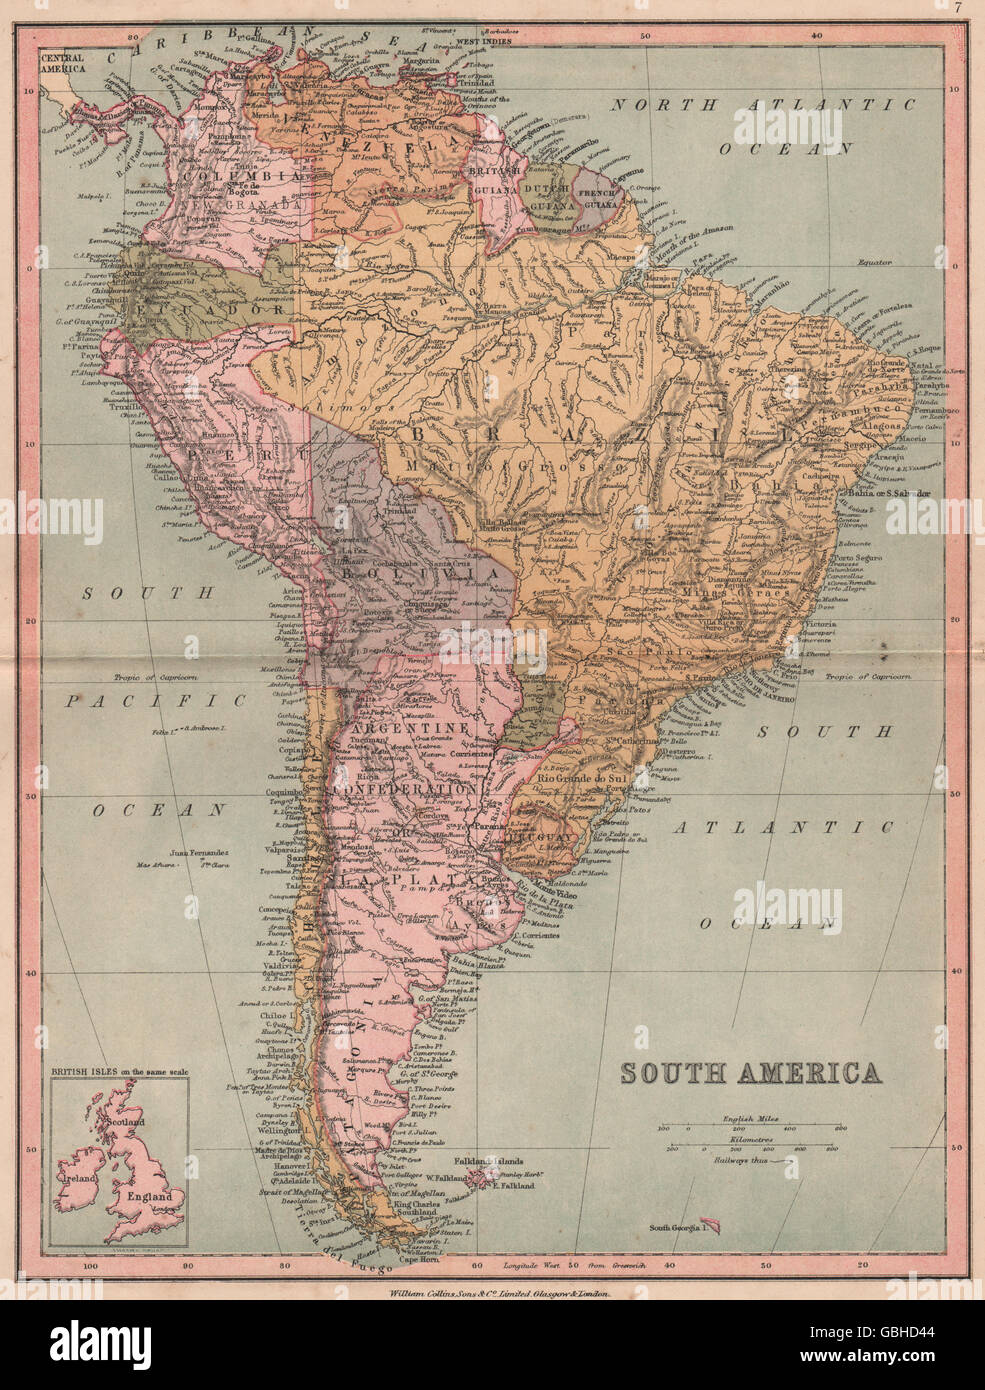 SOUTH AMERICA:Bolivia with sea coast;borders pre 'War of the Pacific'., 1880 map - Stock Image